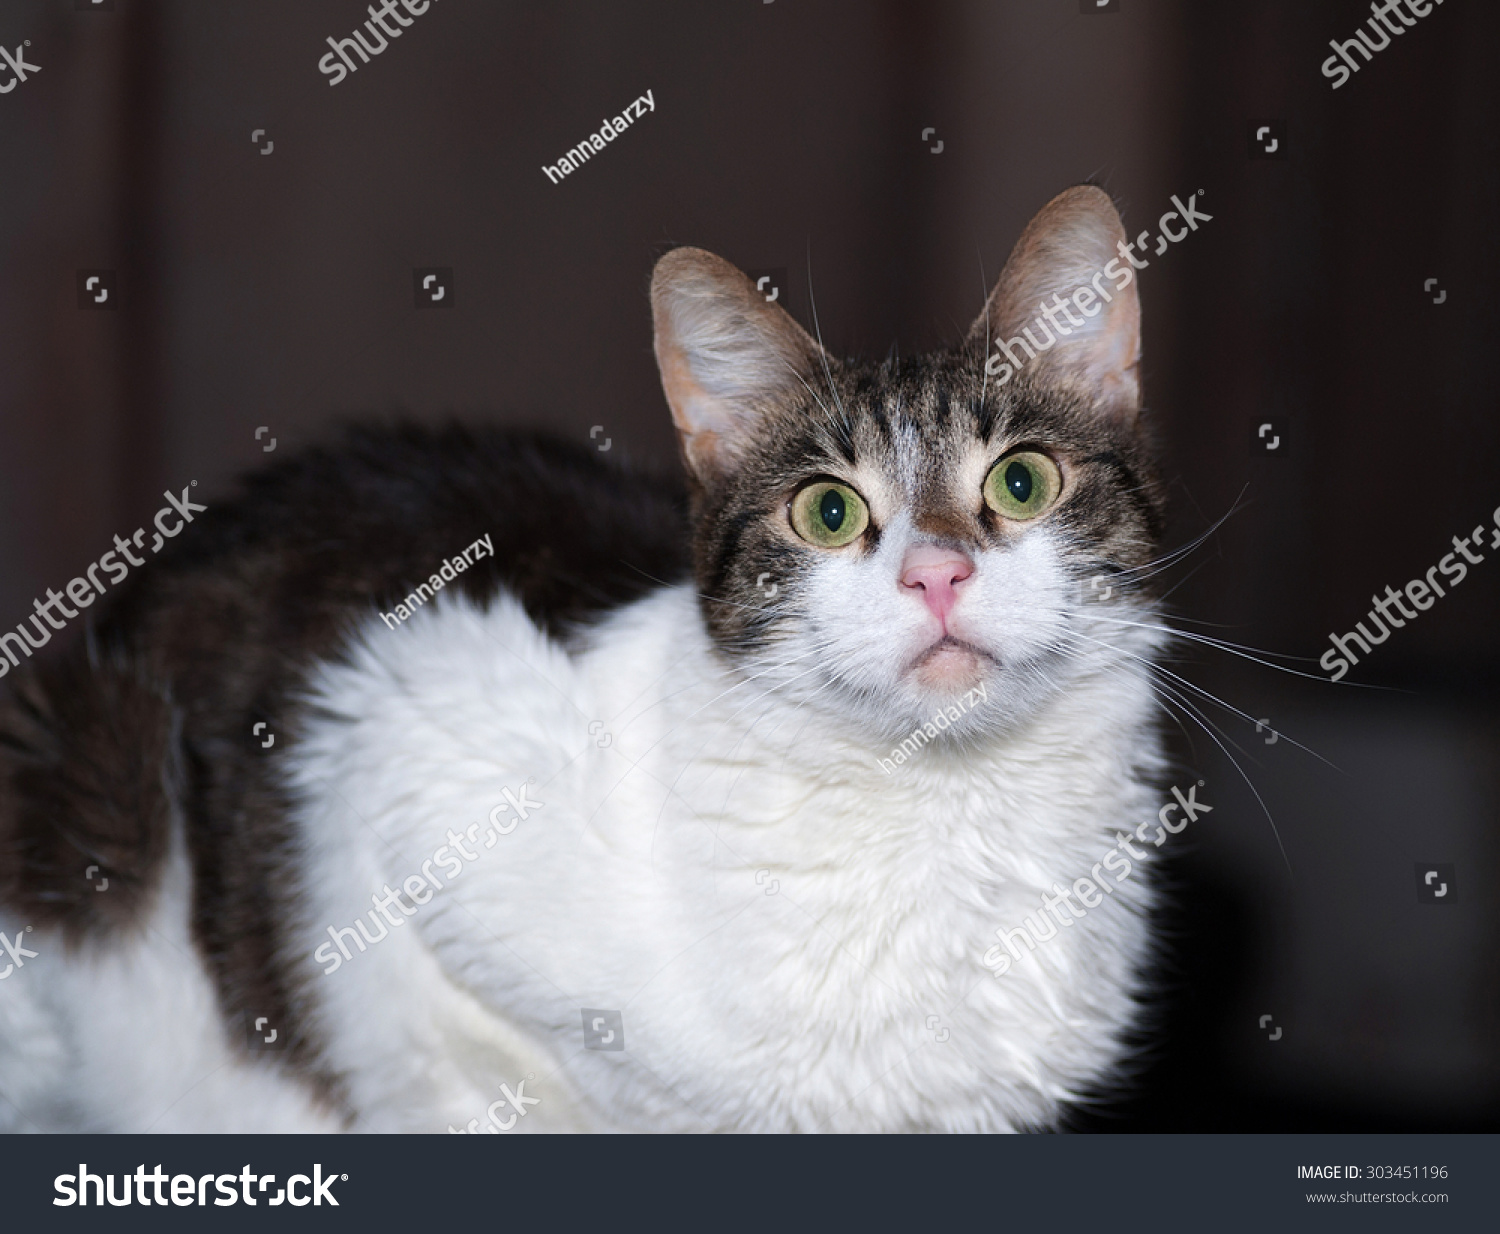 White Tabby Cat On Dark Background Stock Photo (Royalty Free ...